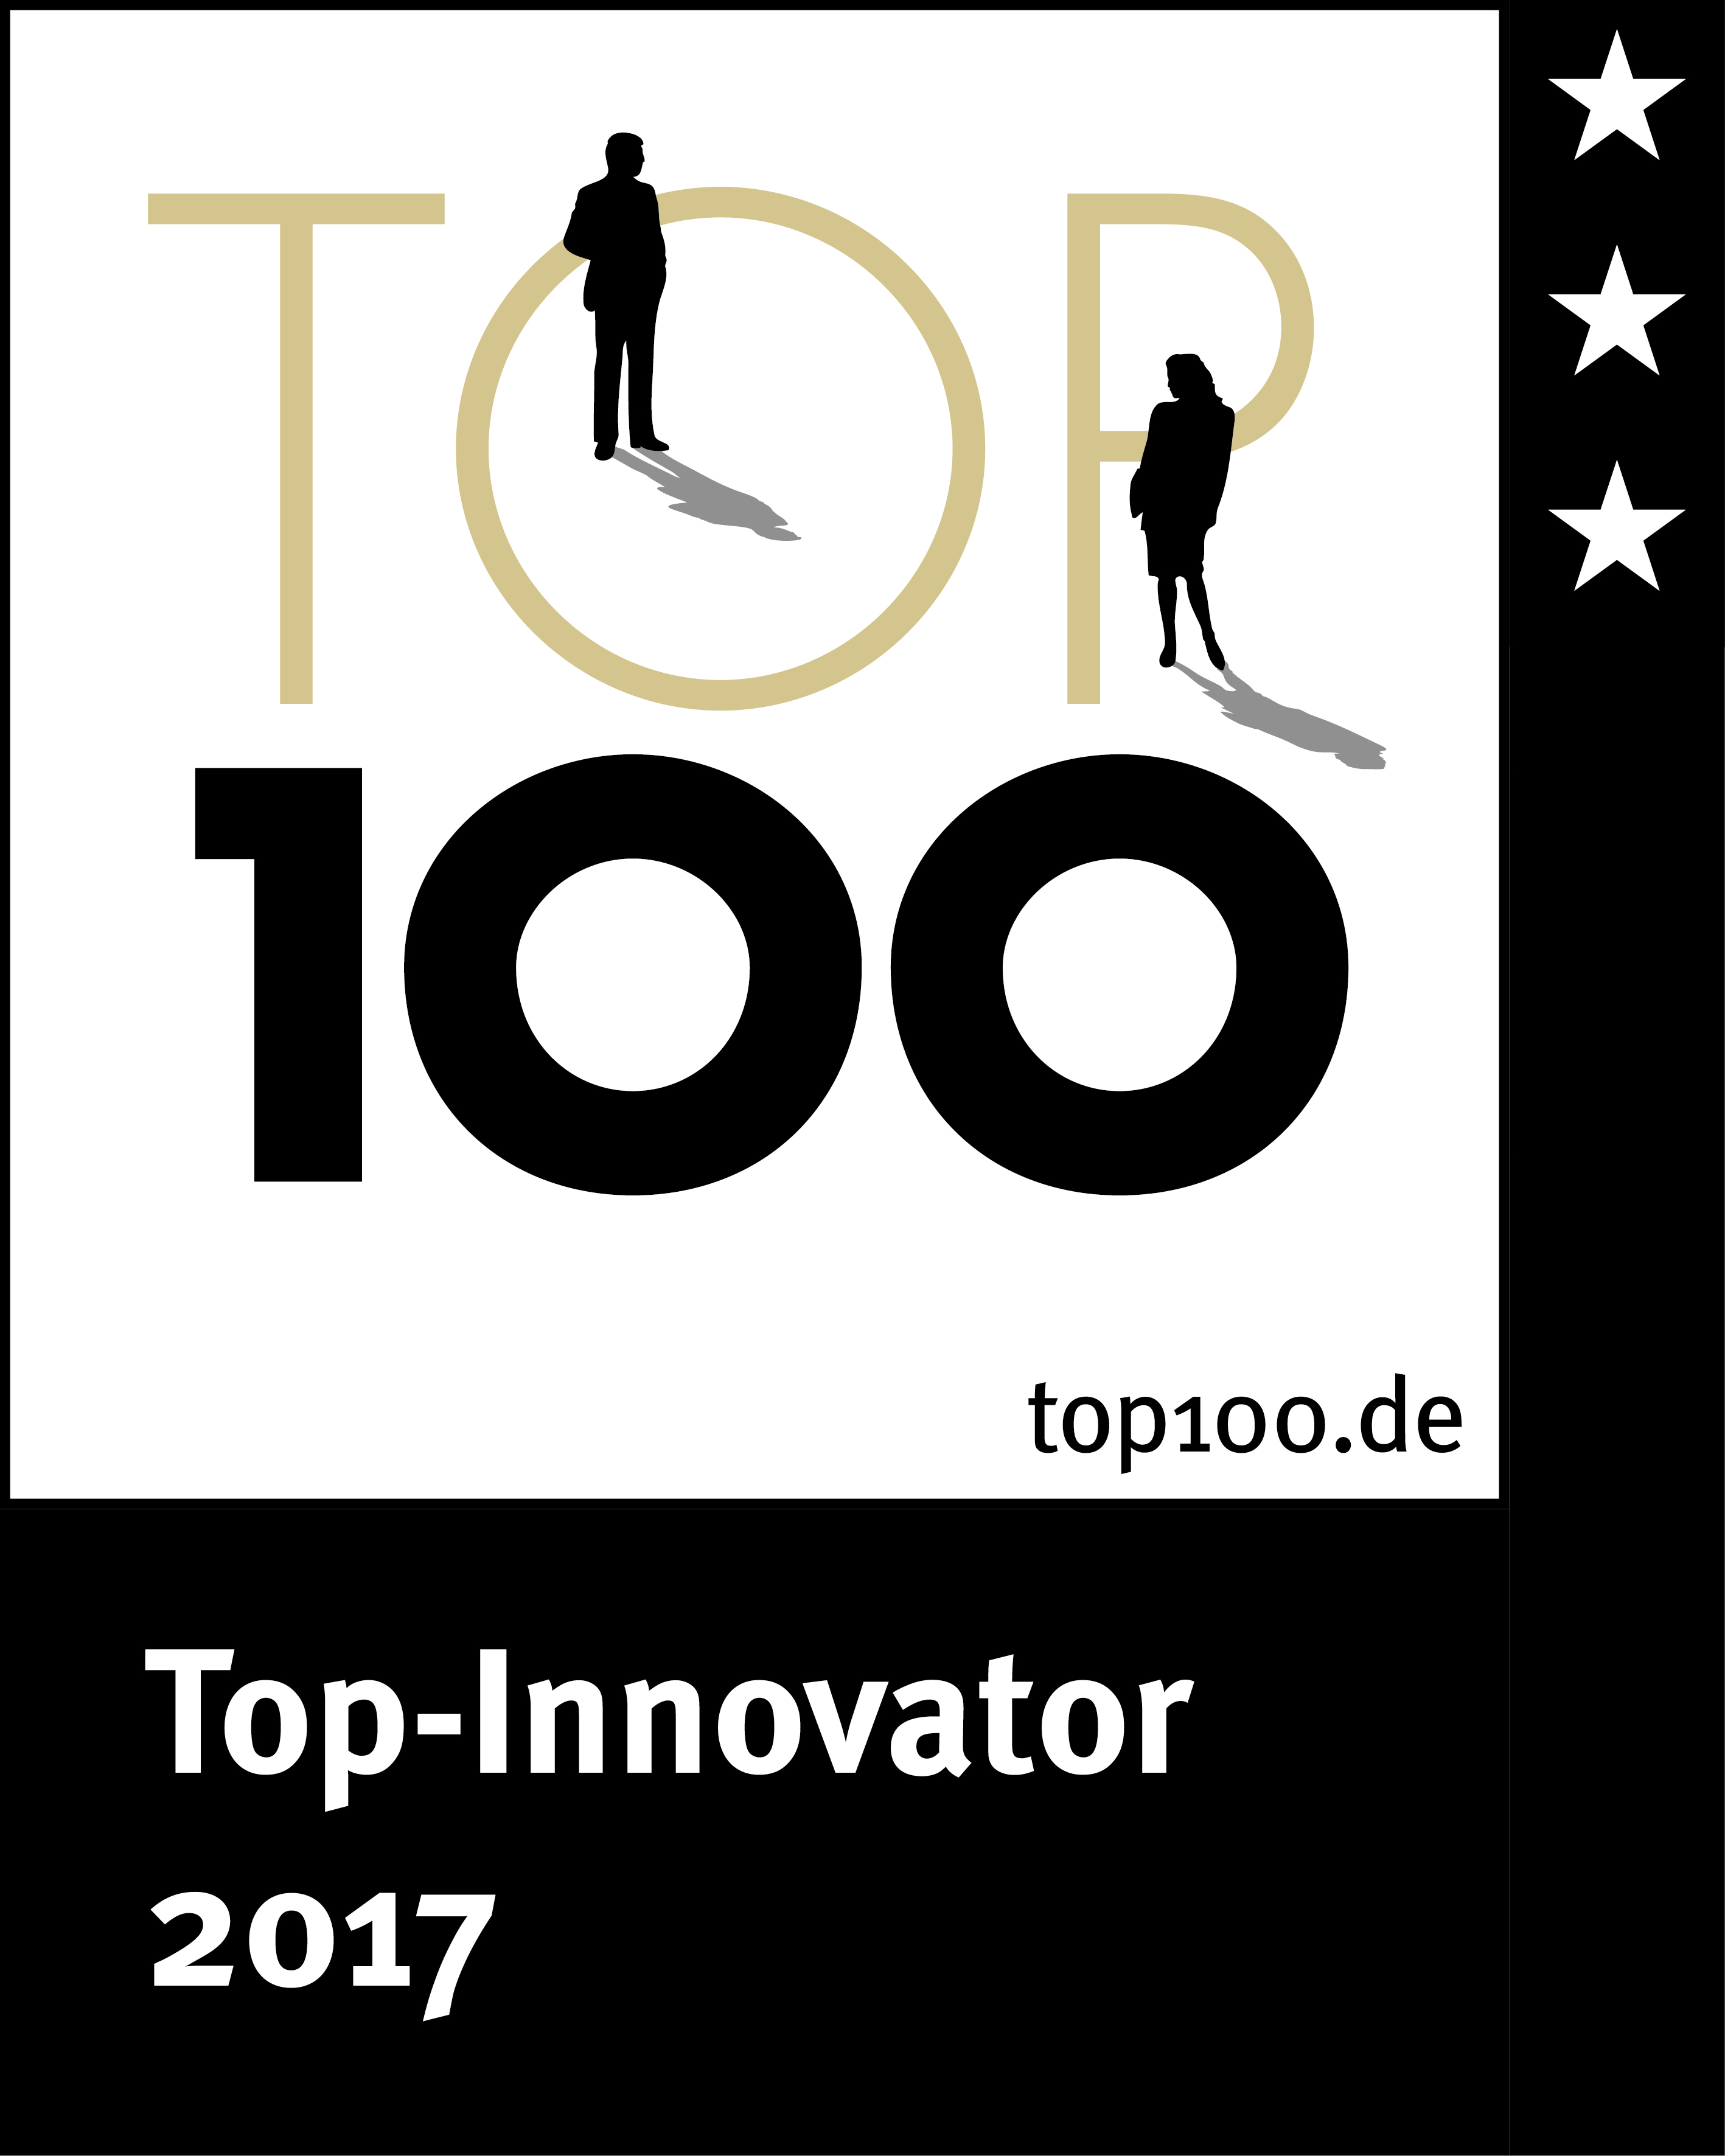 top 100 innovator 2017 award for humintech company